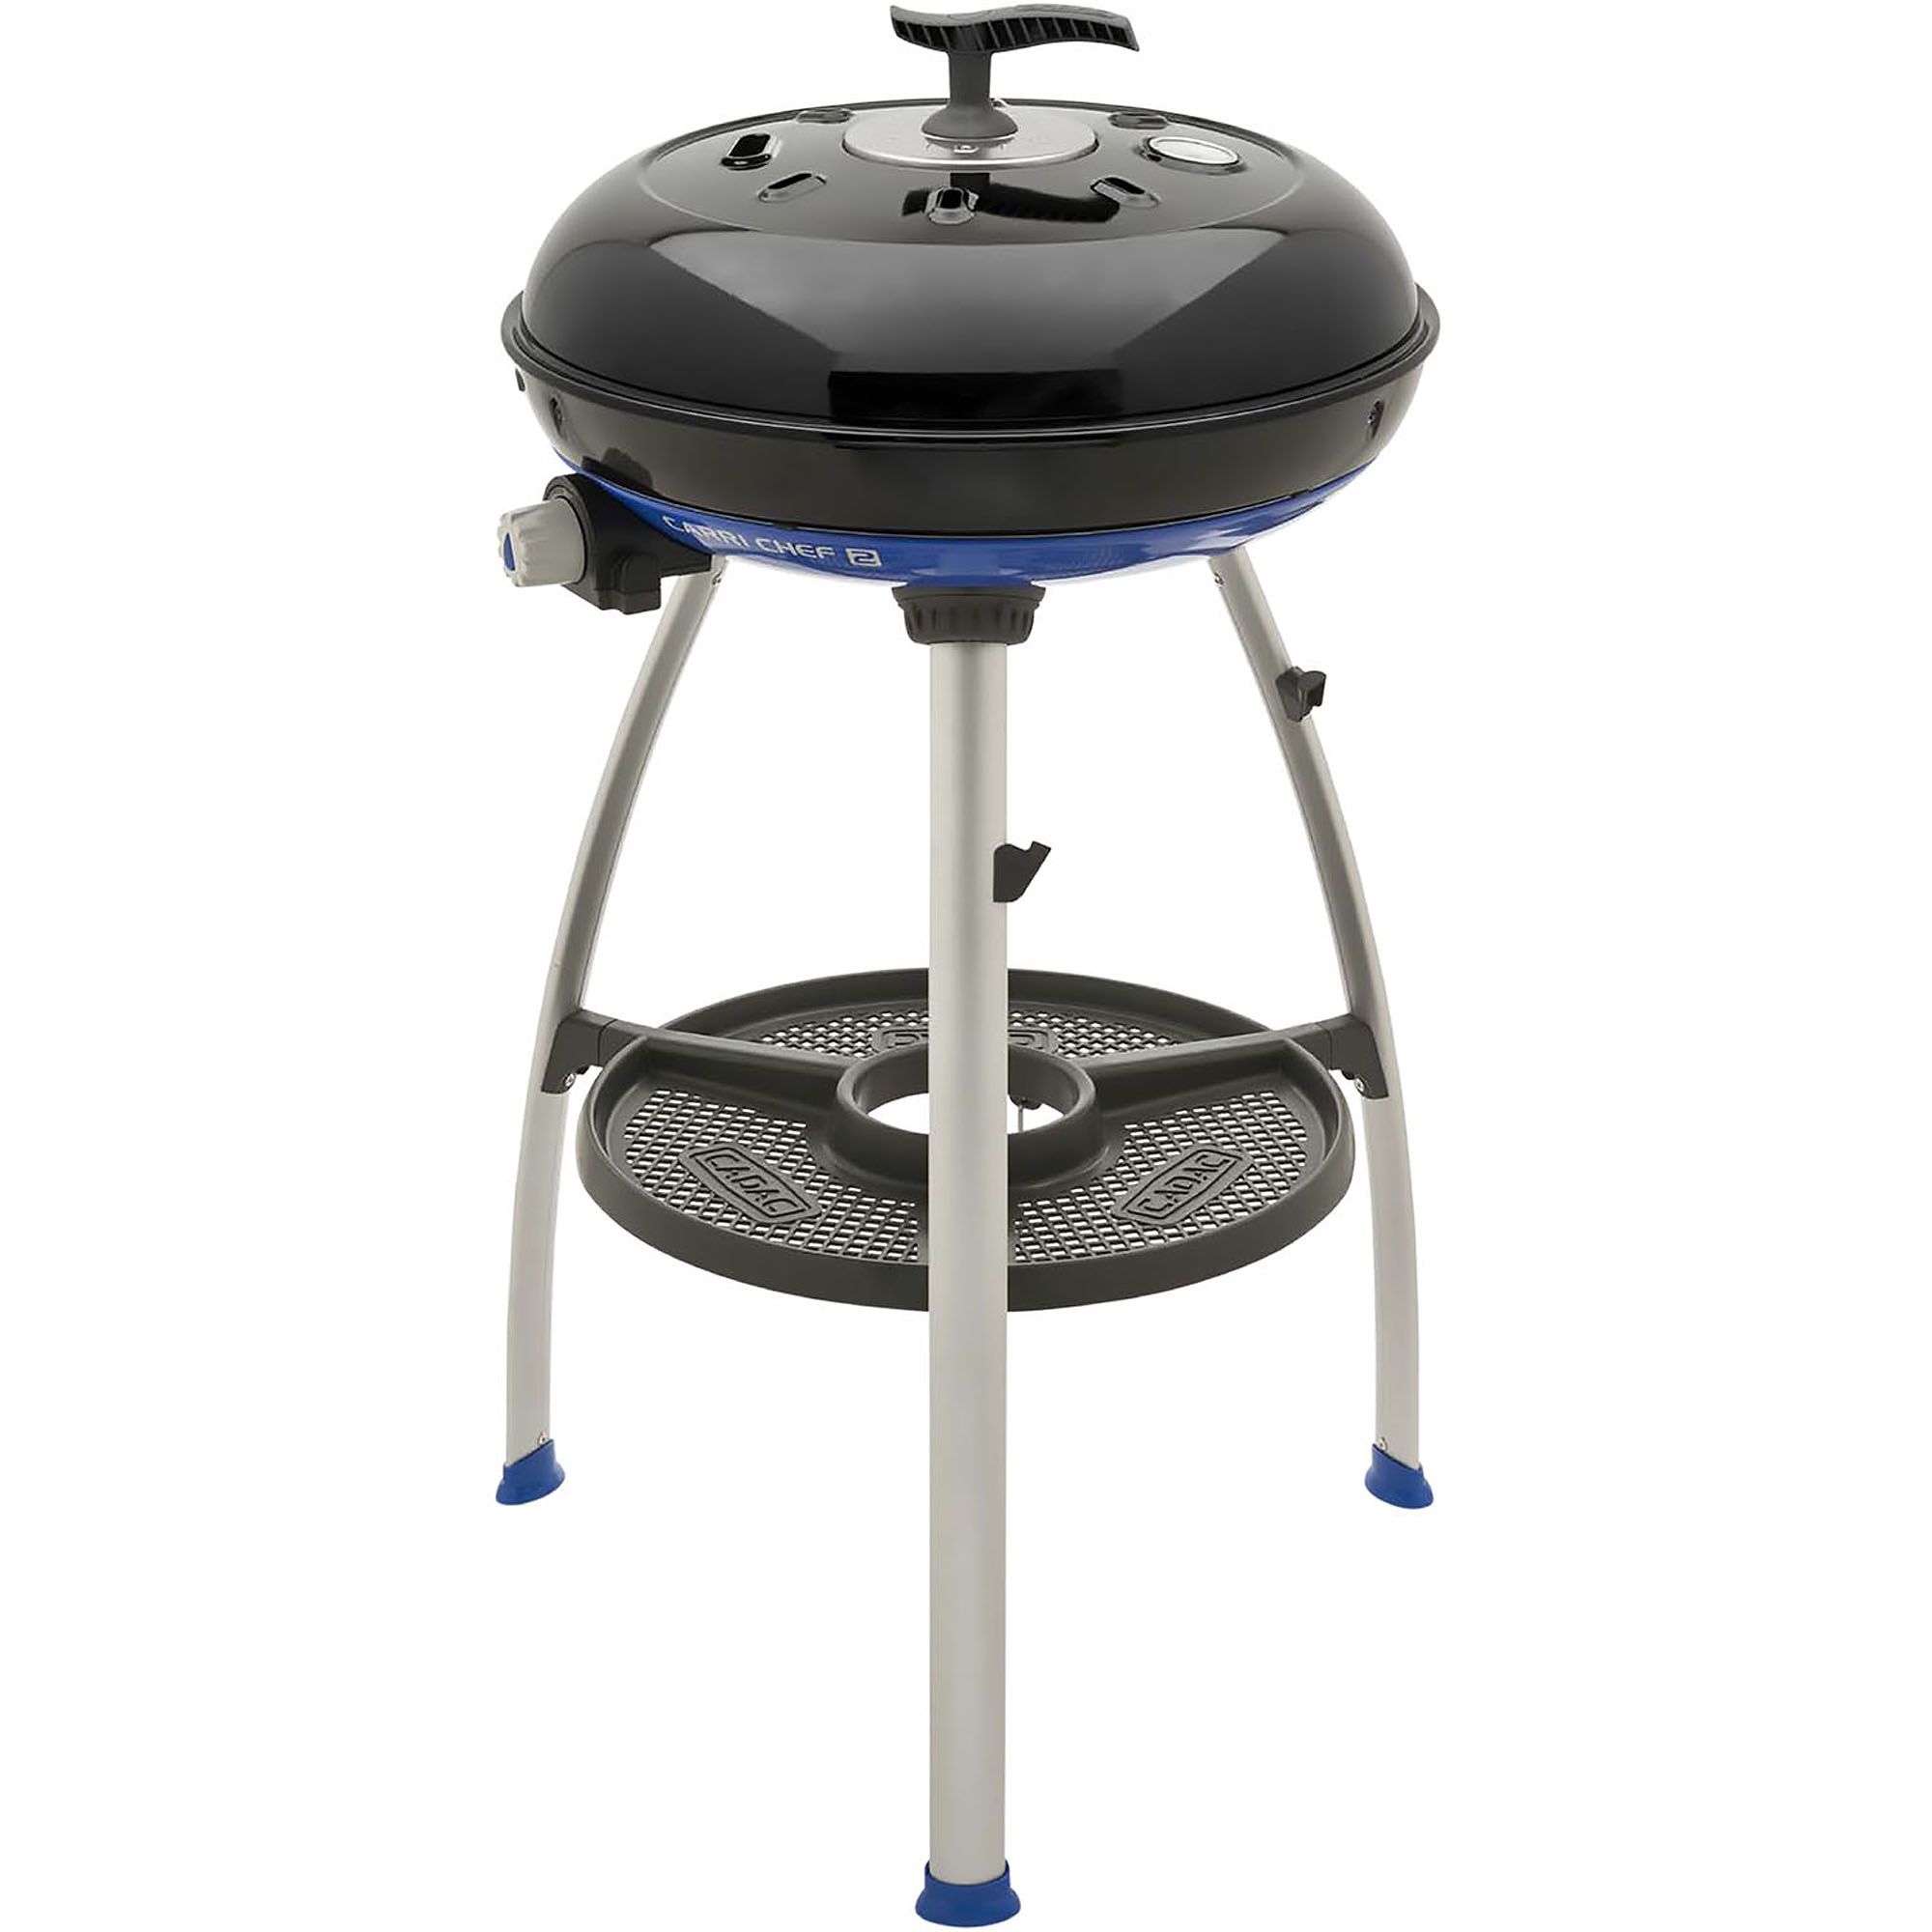 Cadac Carri Chef 2 Portable Grill with Pot Ring, Grill Plate, and Chef Pan by Cadac